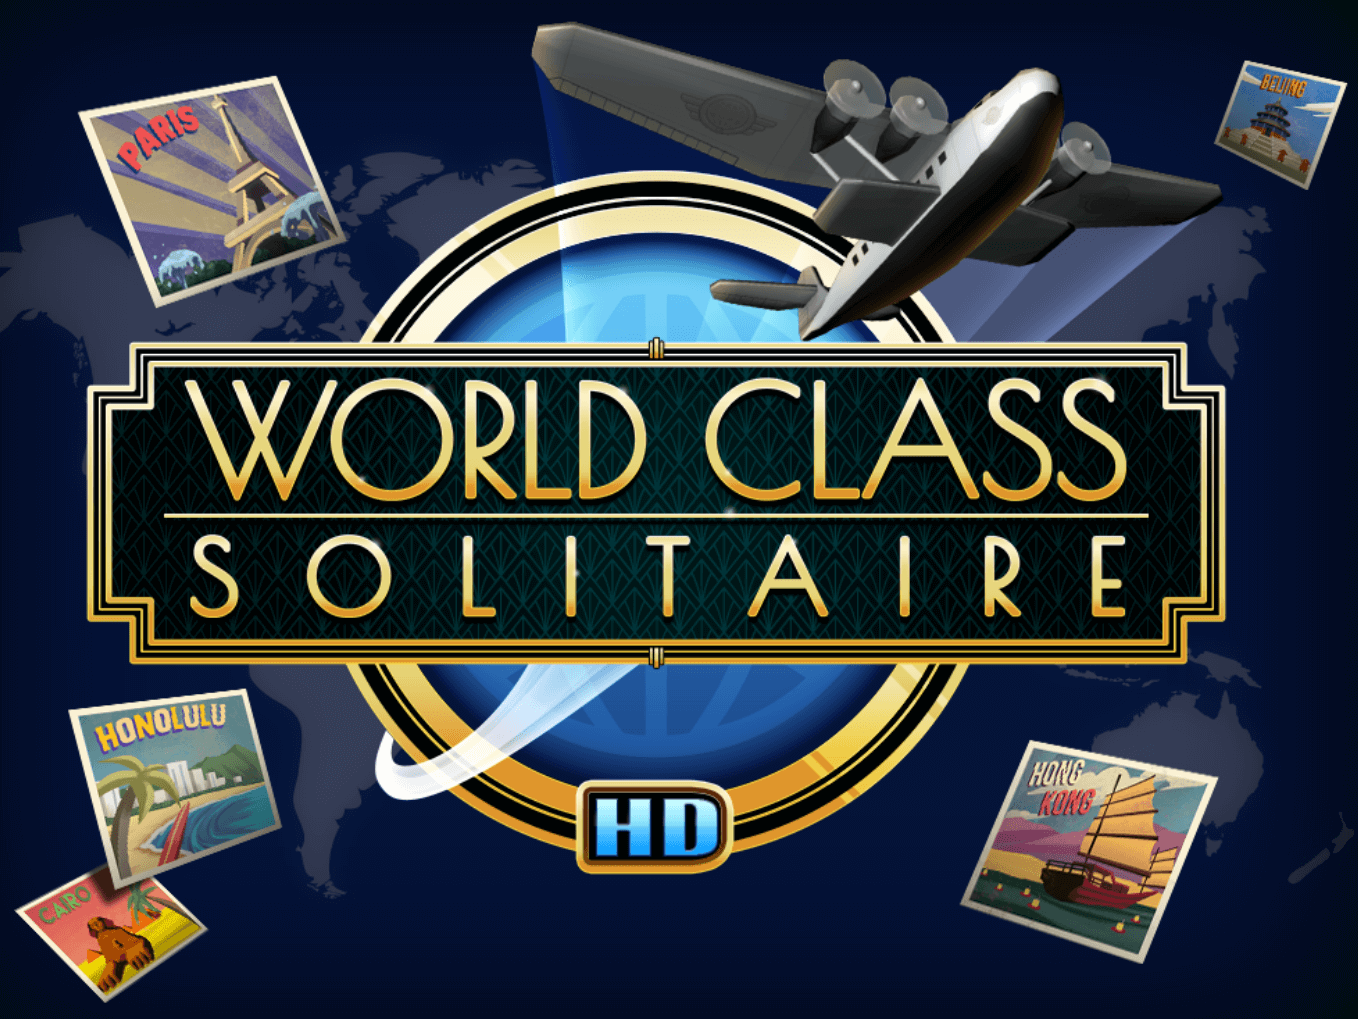 Now available world class solitaire hd for Big fish casino promo code free chips